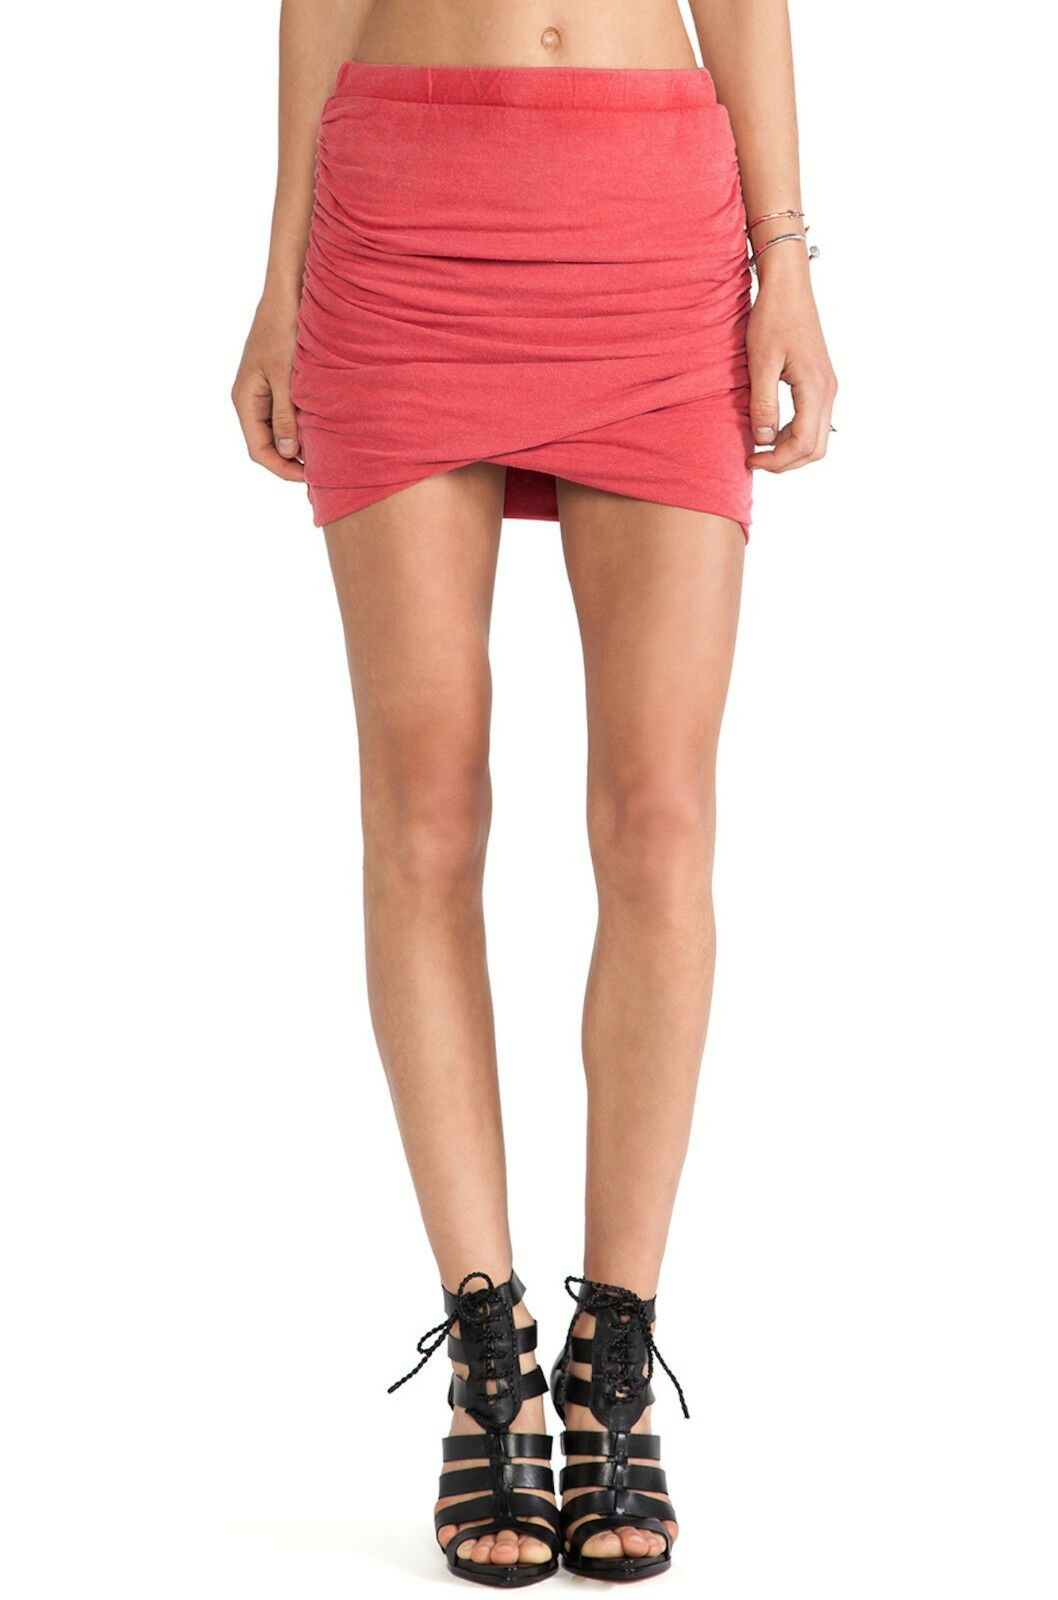 Pam & Gela Red Ruched Mini Skirt NWT Made in USA Women's S14JG306L Size M